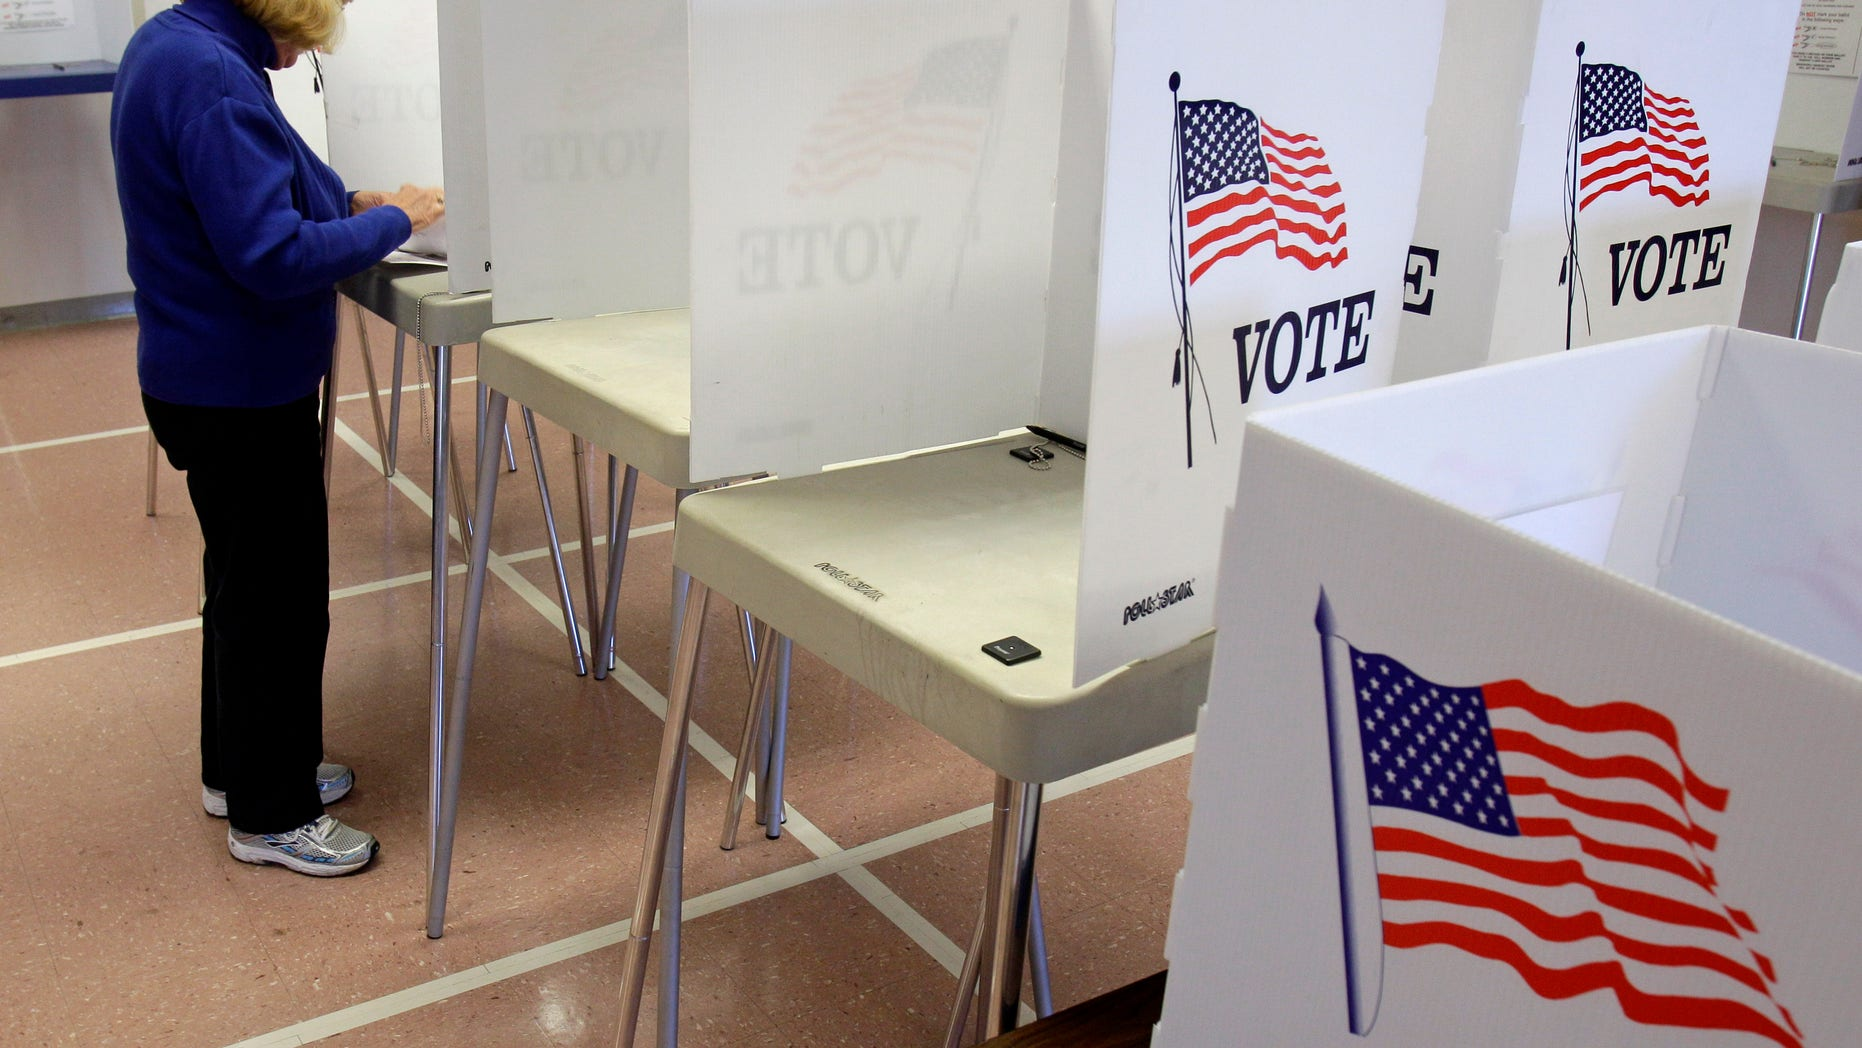 Nancy Suhadolnik of Strongsville, Ohio, votes in early voting Tuesday, Oct. 4, 2011, in Cleveland.